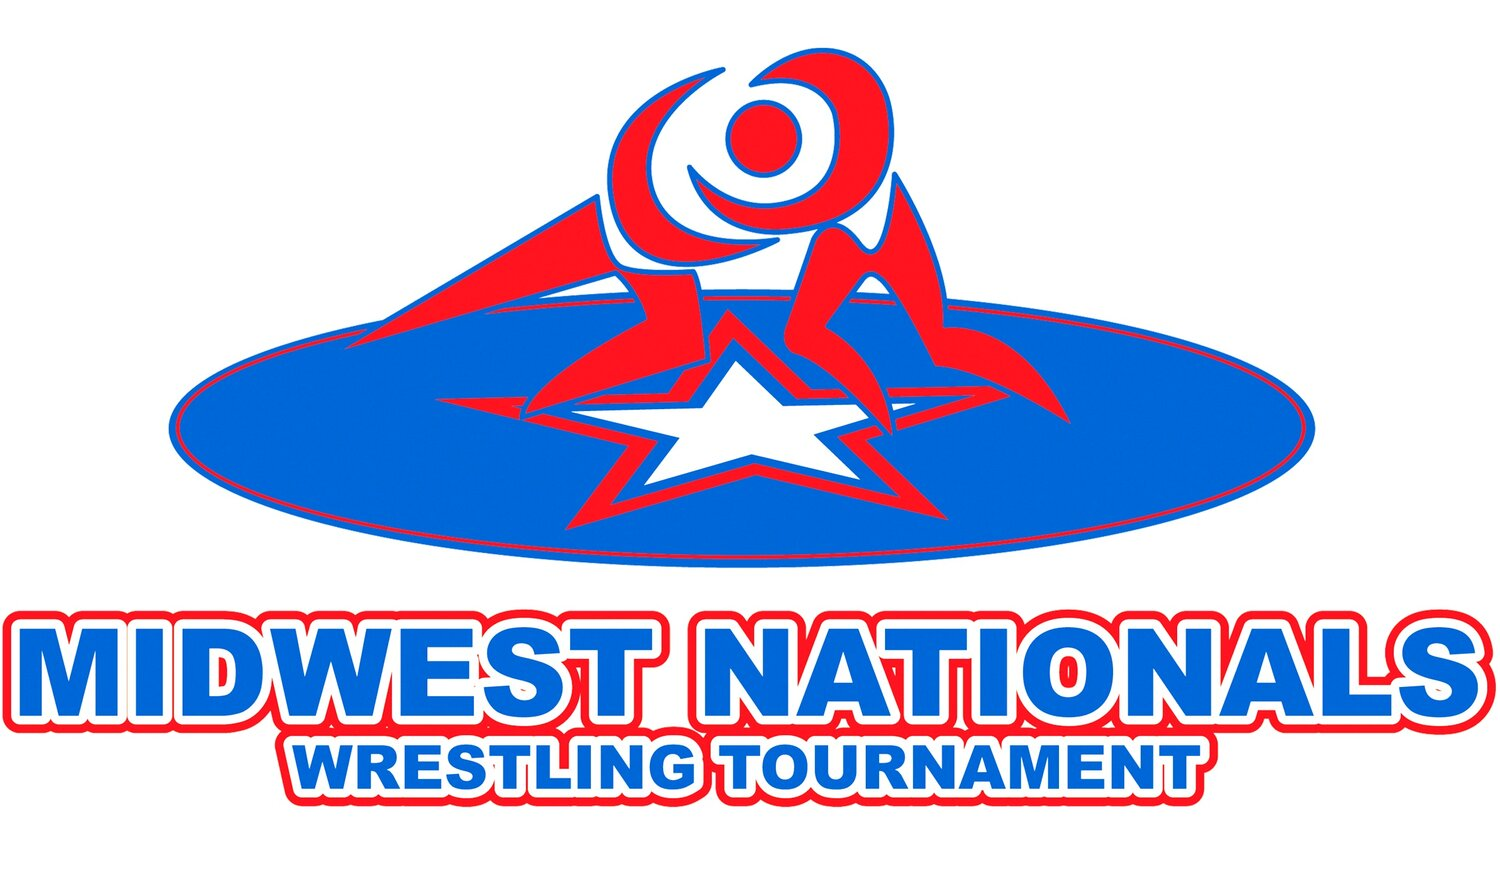 Midwest Nationals Wrestling Tournament